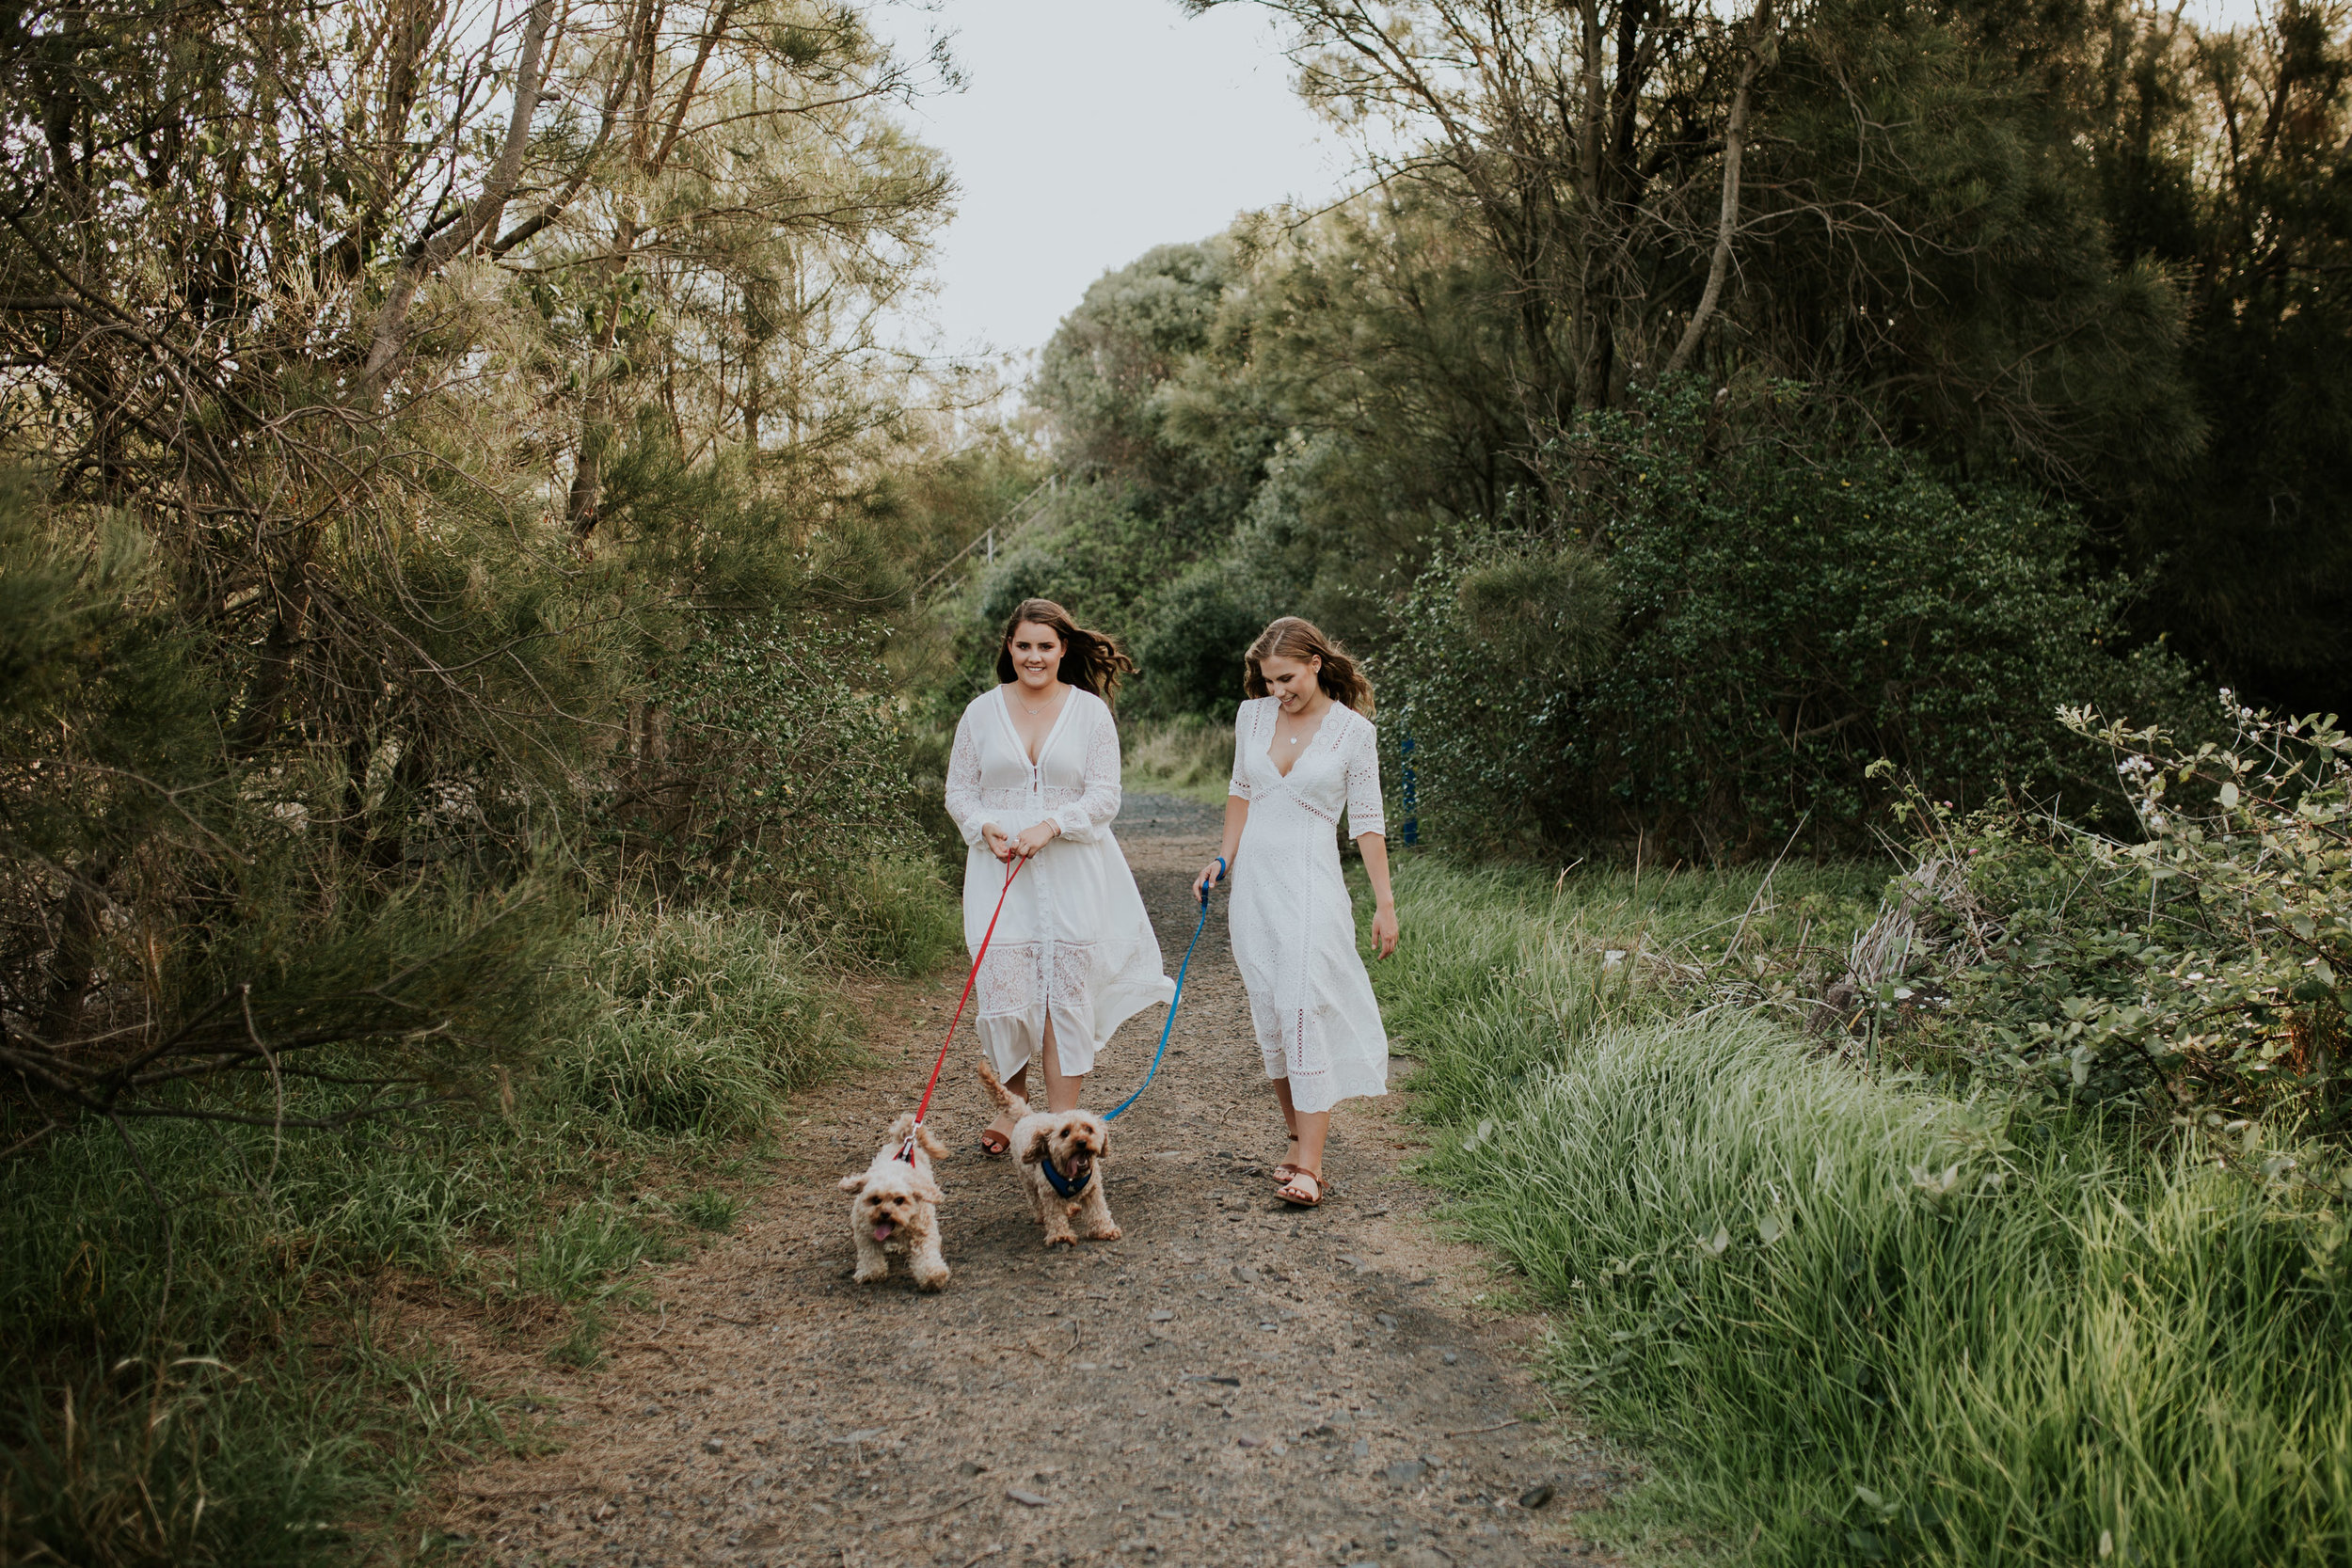 Meg+Leah+sisters+Relaxed+family+Session+Kiama+-13.jpg